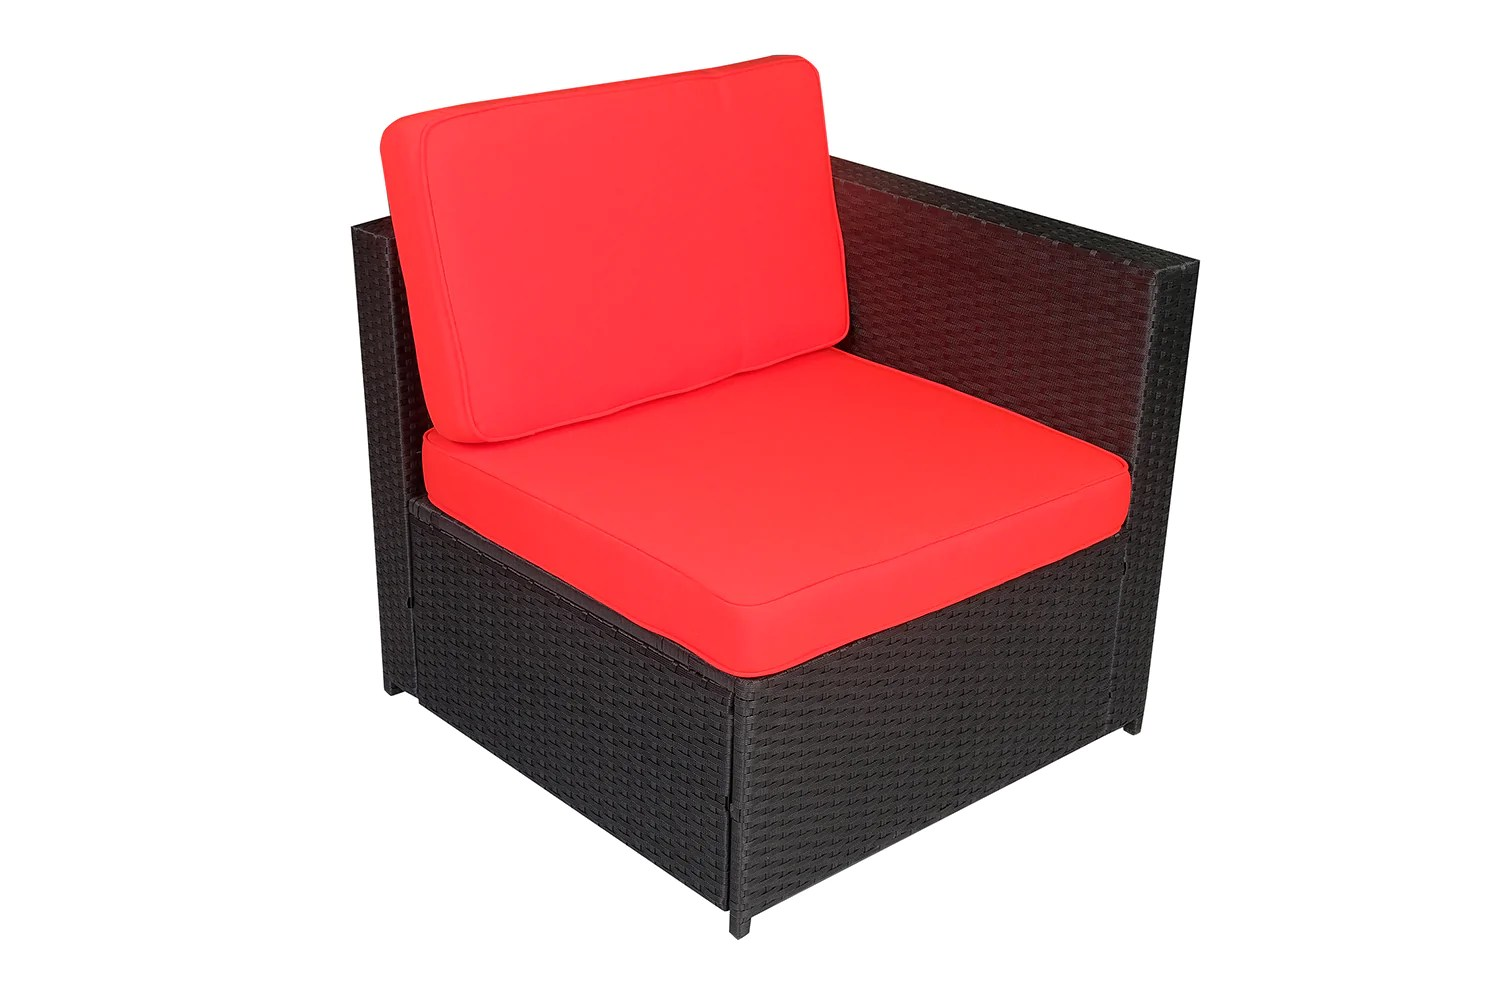 Rattan Sofa Near Me Outdoor Rattan Wicker Sofa Couch Patio Furniture Chair Garden